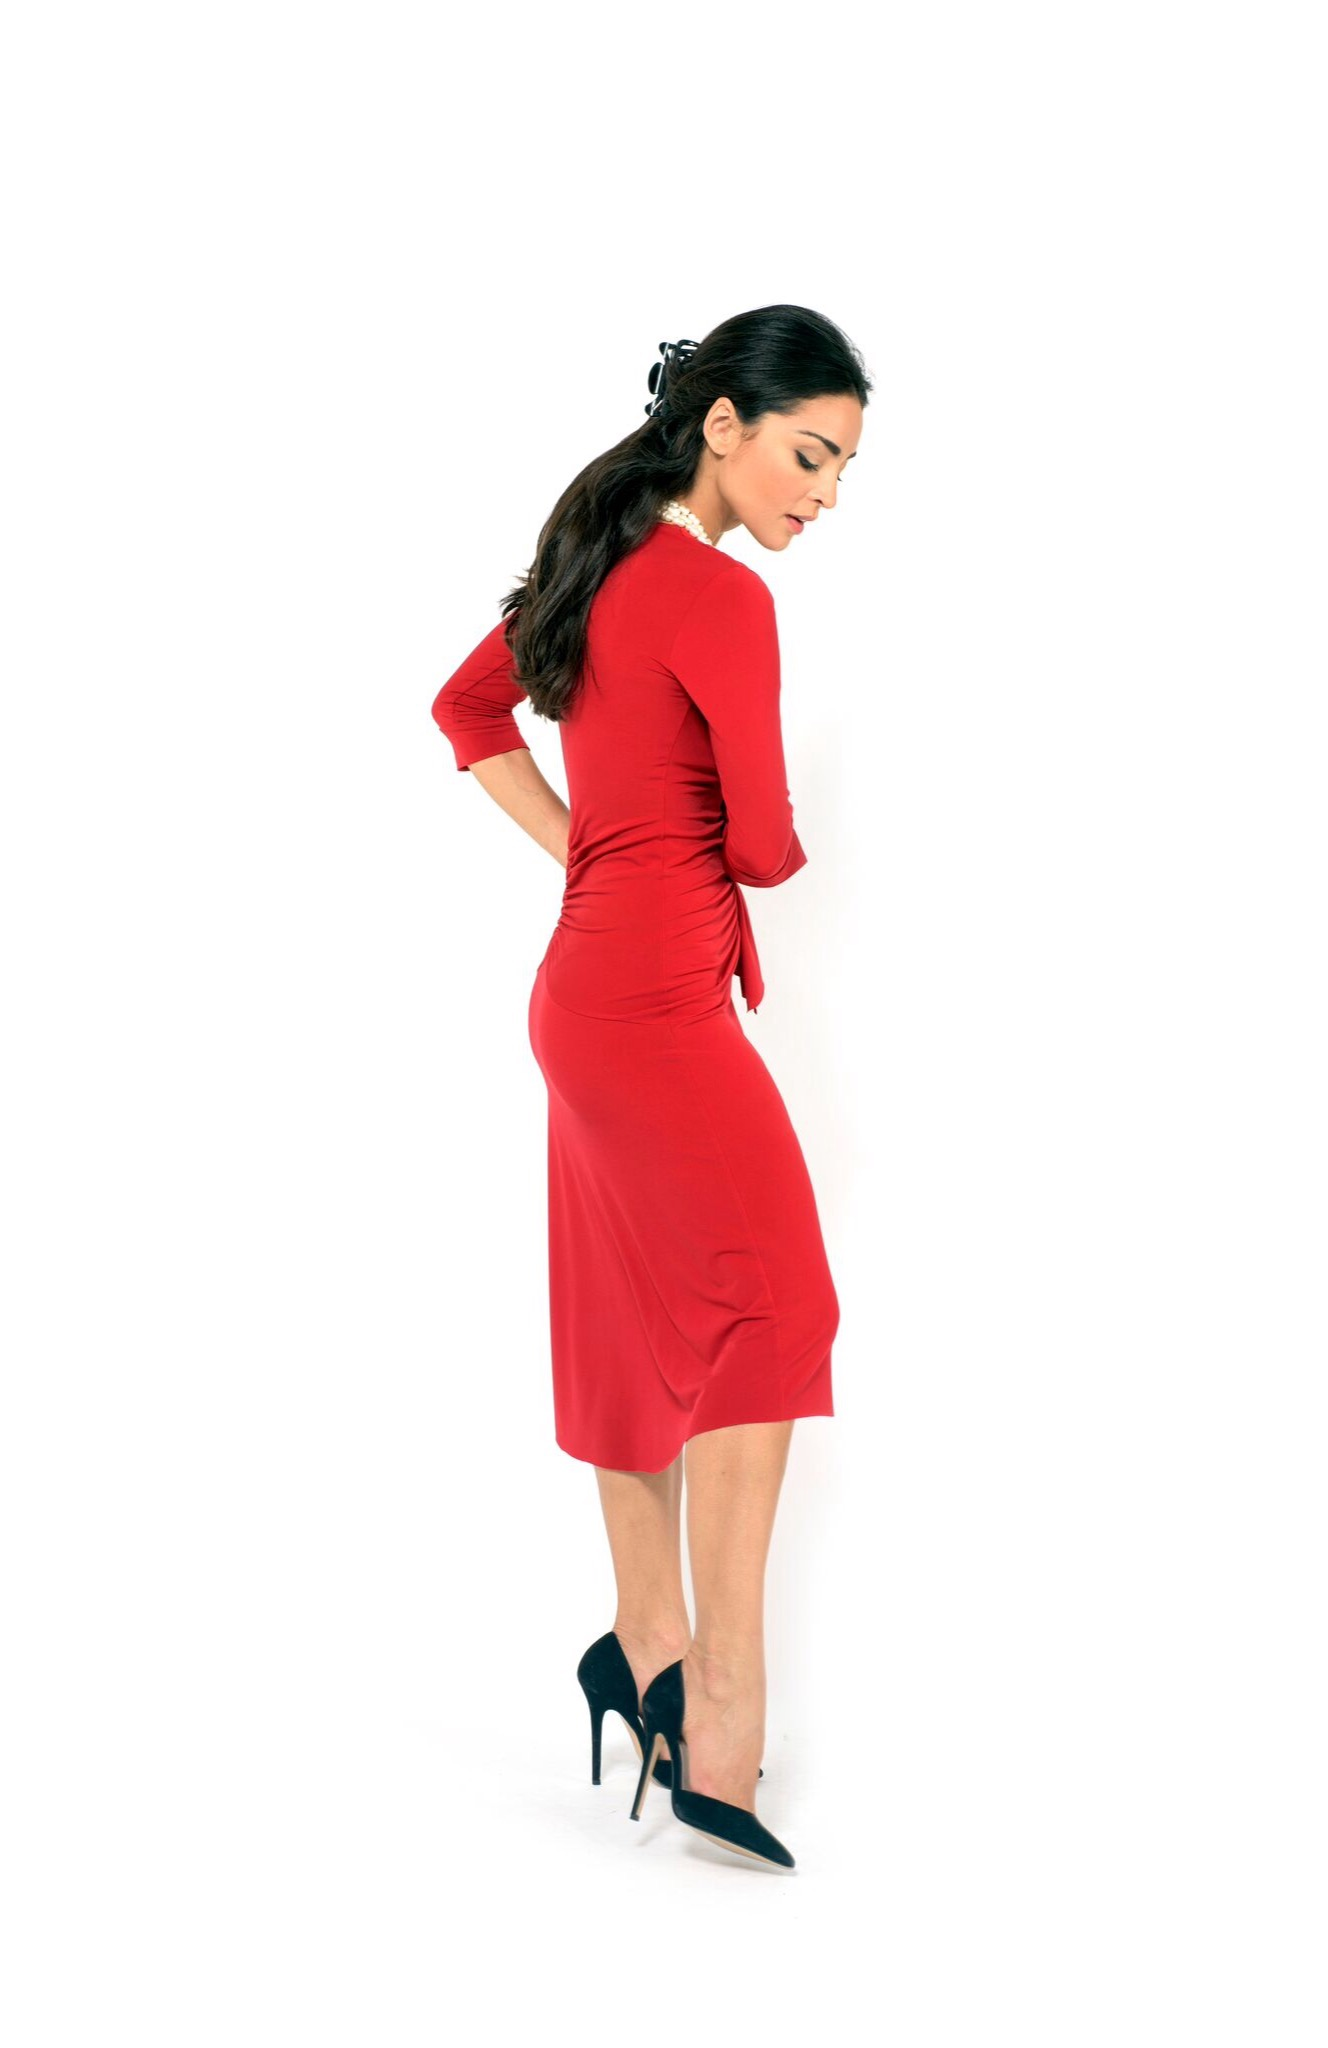 6fb0c5d704e0c The Bow Tango Dress - The London Tango Boutique office dress sleeves